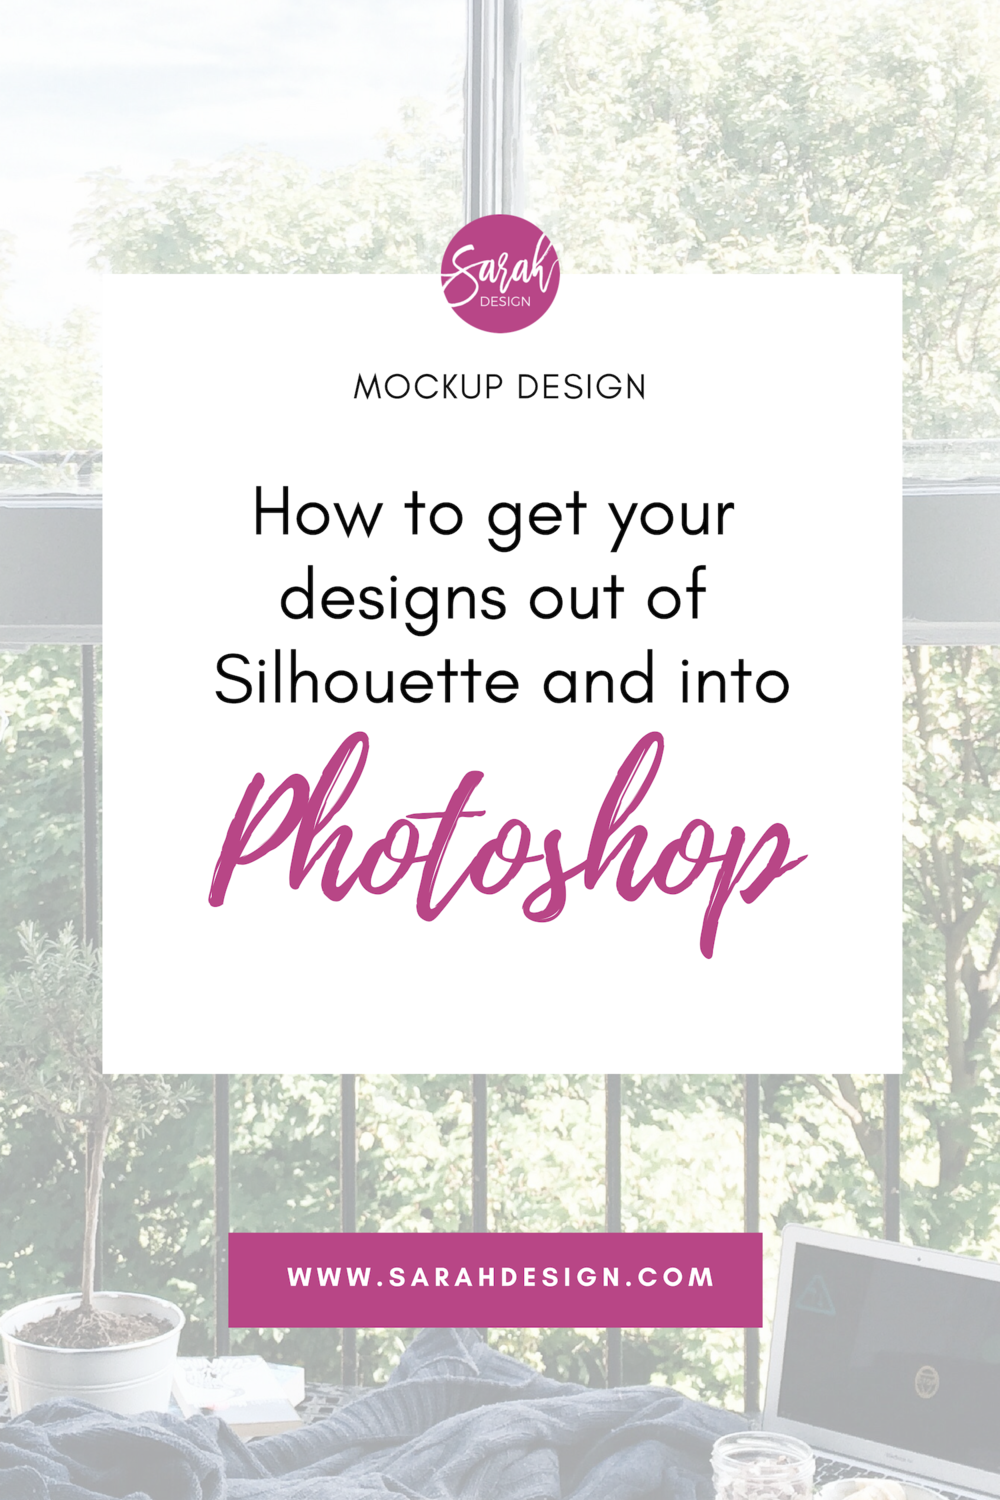 How to get your designs out of Silhouette and into a Photoshop mockup. By SarahDesign.com